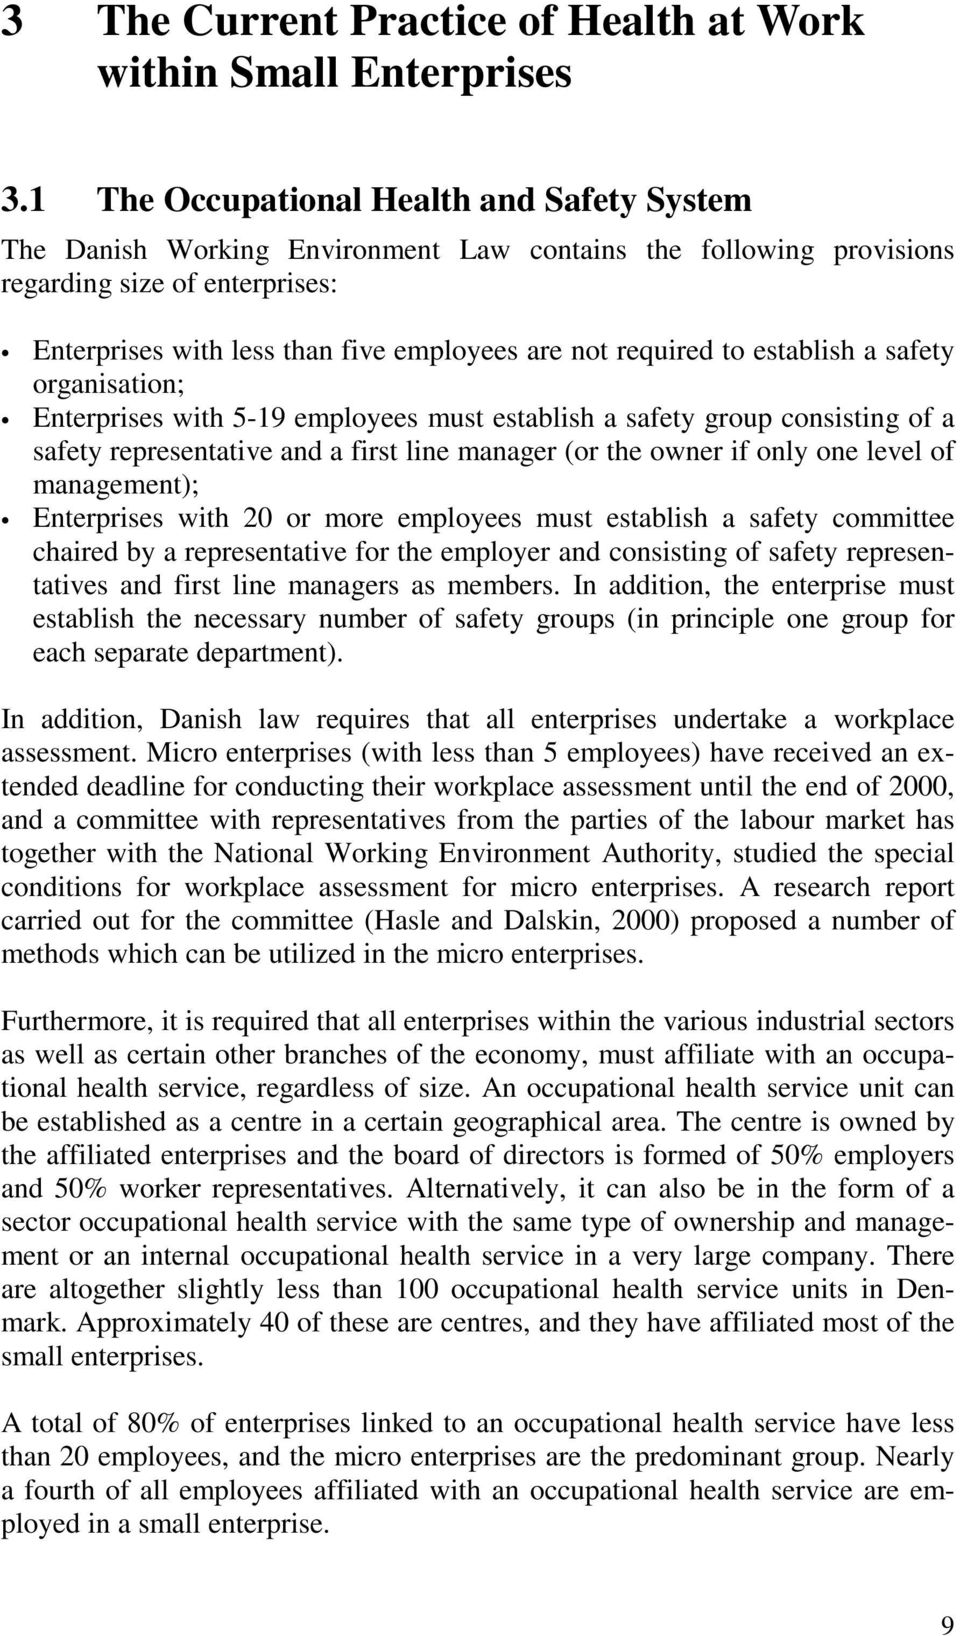 required to establish a safety organisation; Enterprises with 5-19 employees must establish a safety group consisting of a safety representative and a first line manager (or the owner if only one